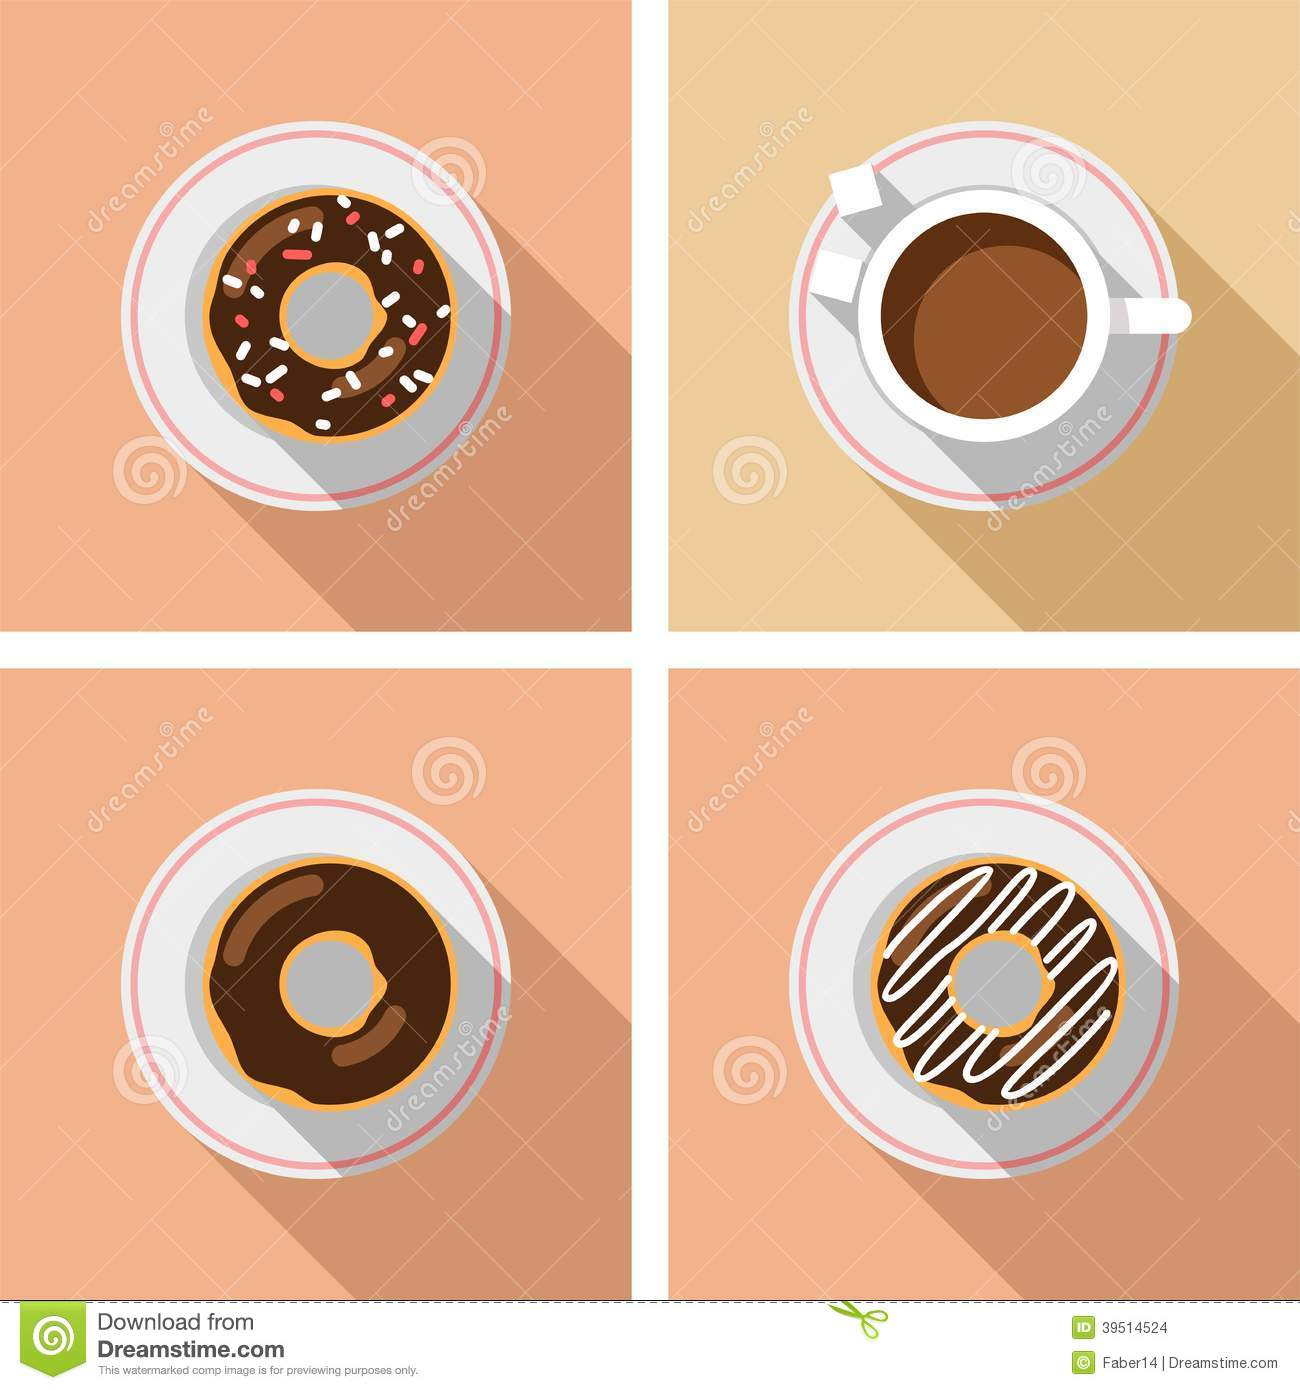 Cup of coffee with cakes - vector graphics